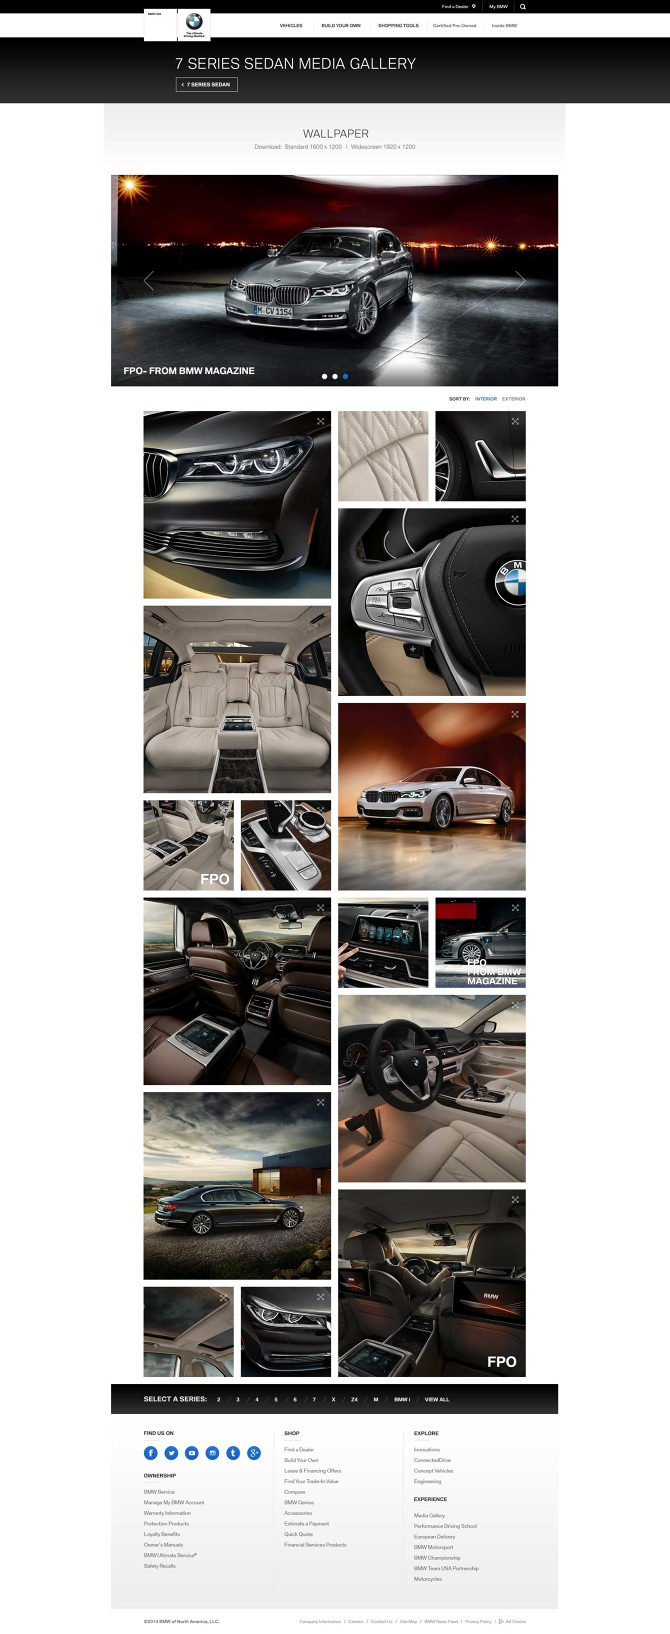 BMWRedesign_P2_7Series_Gallery_Sedan_2016_0415_670.jpg